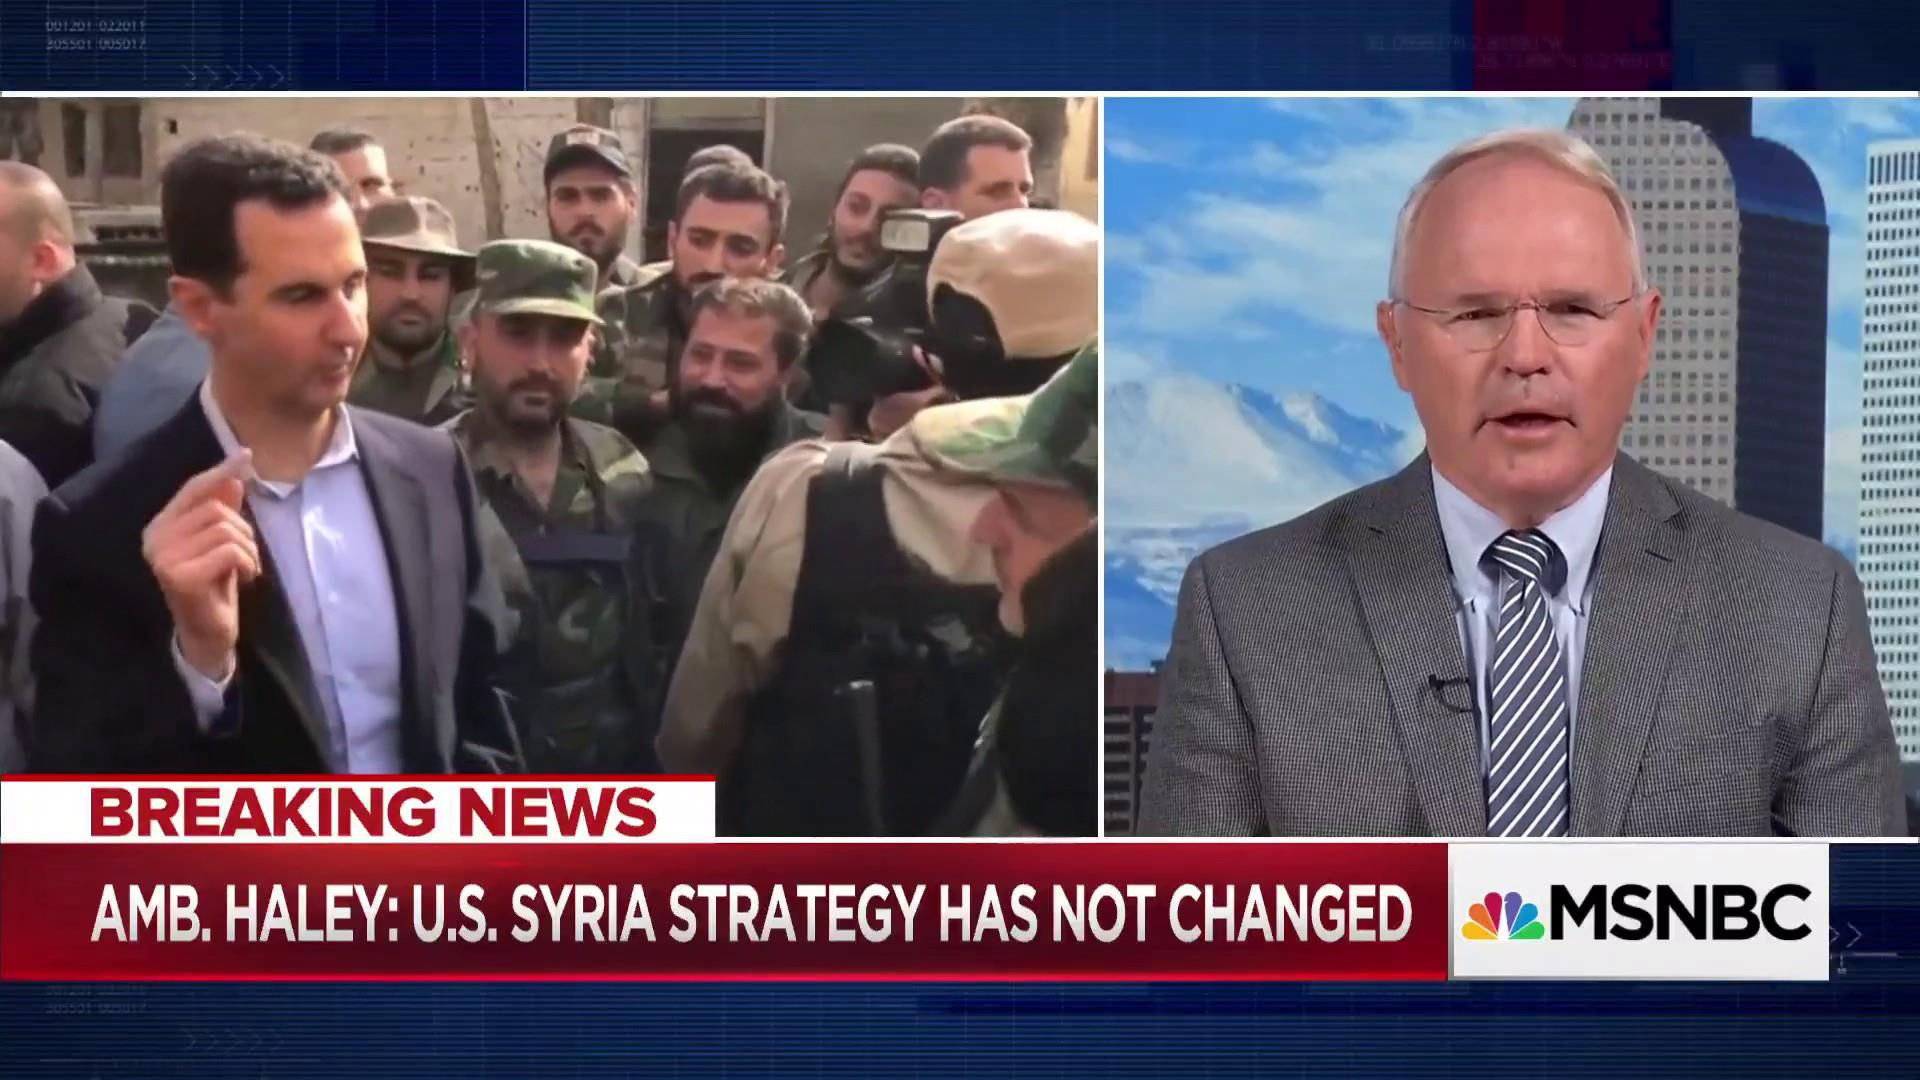 Can Trump bring peace to Syria when Obama could not?